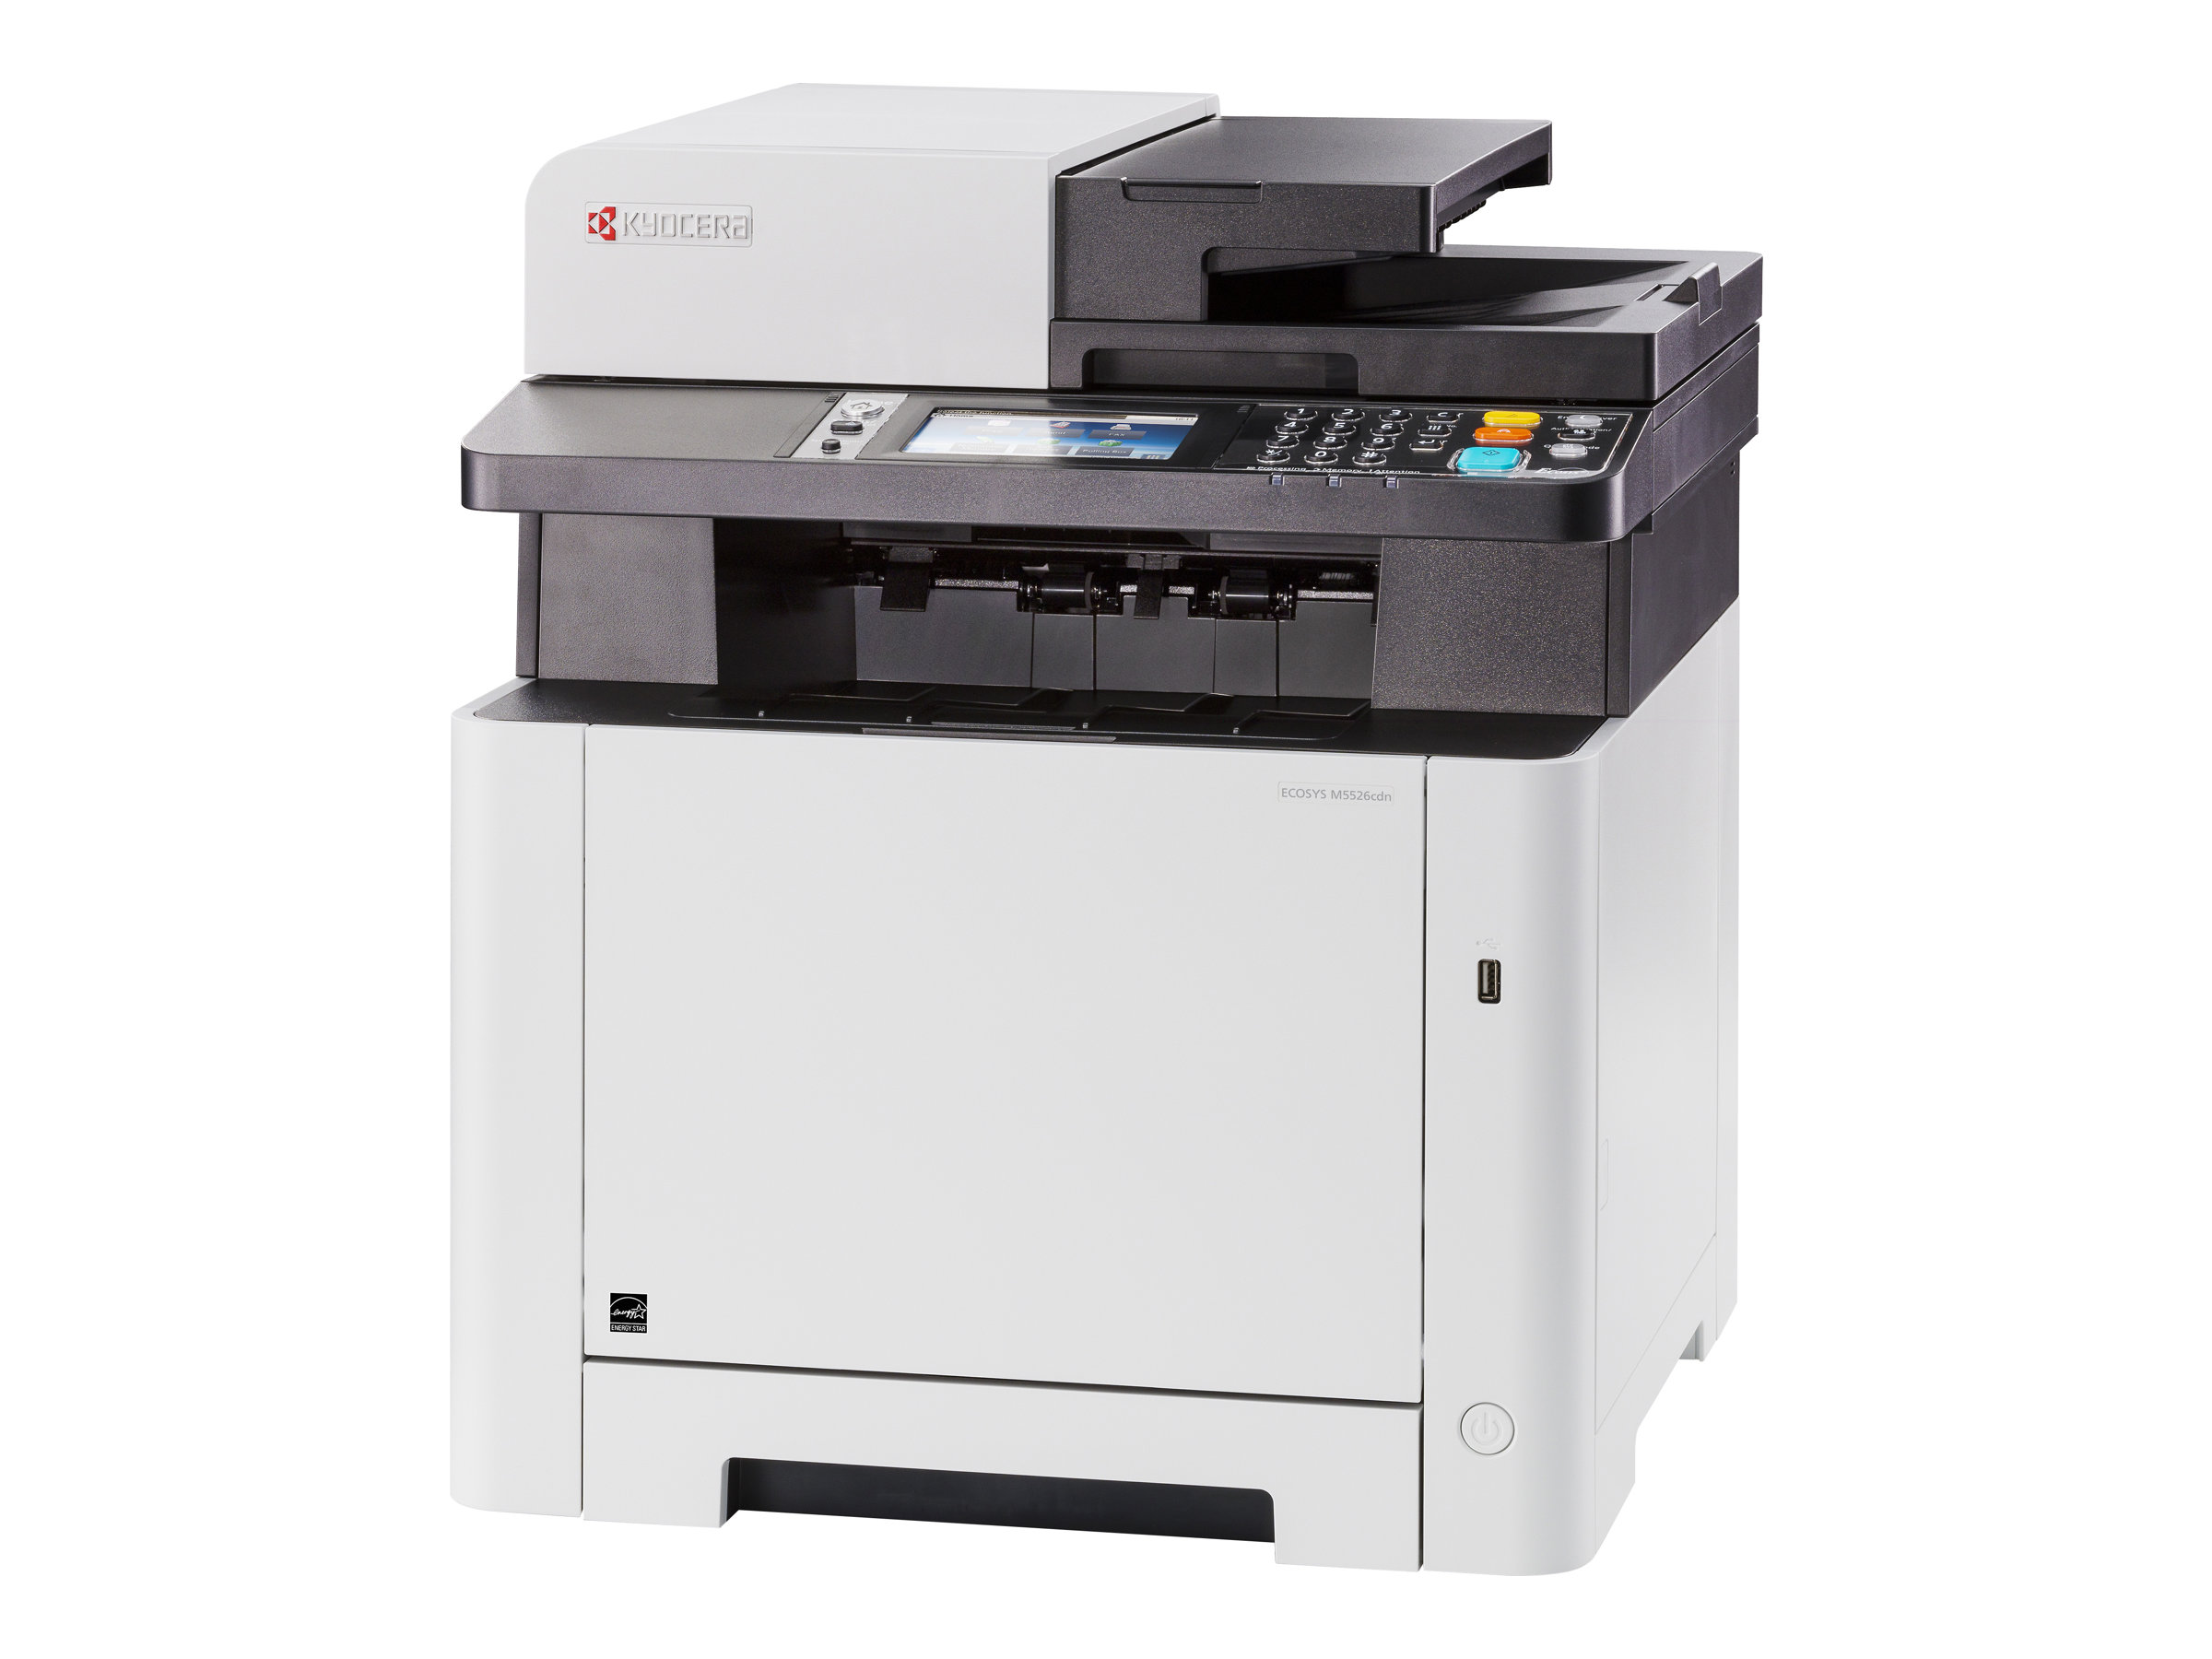 Kyocera ECOSYS M5526cdn - Multifunktionsdrucker - Farbe - Laser - Legal (216 x 356 mm)/